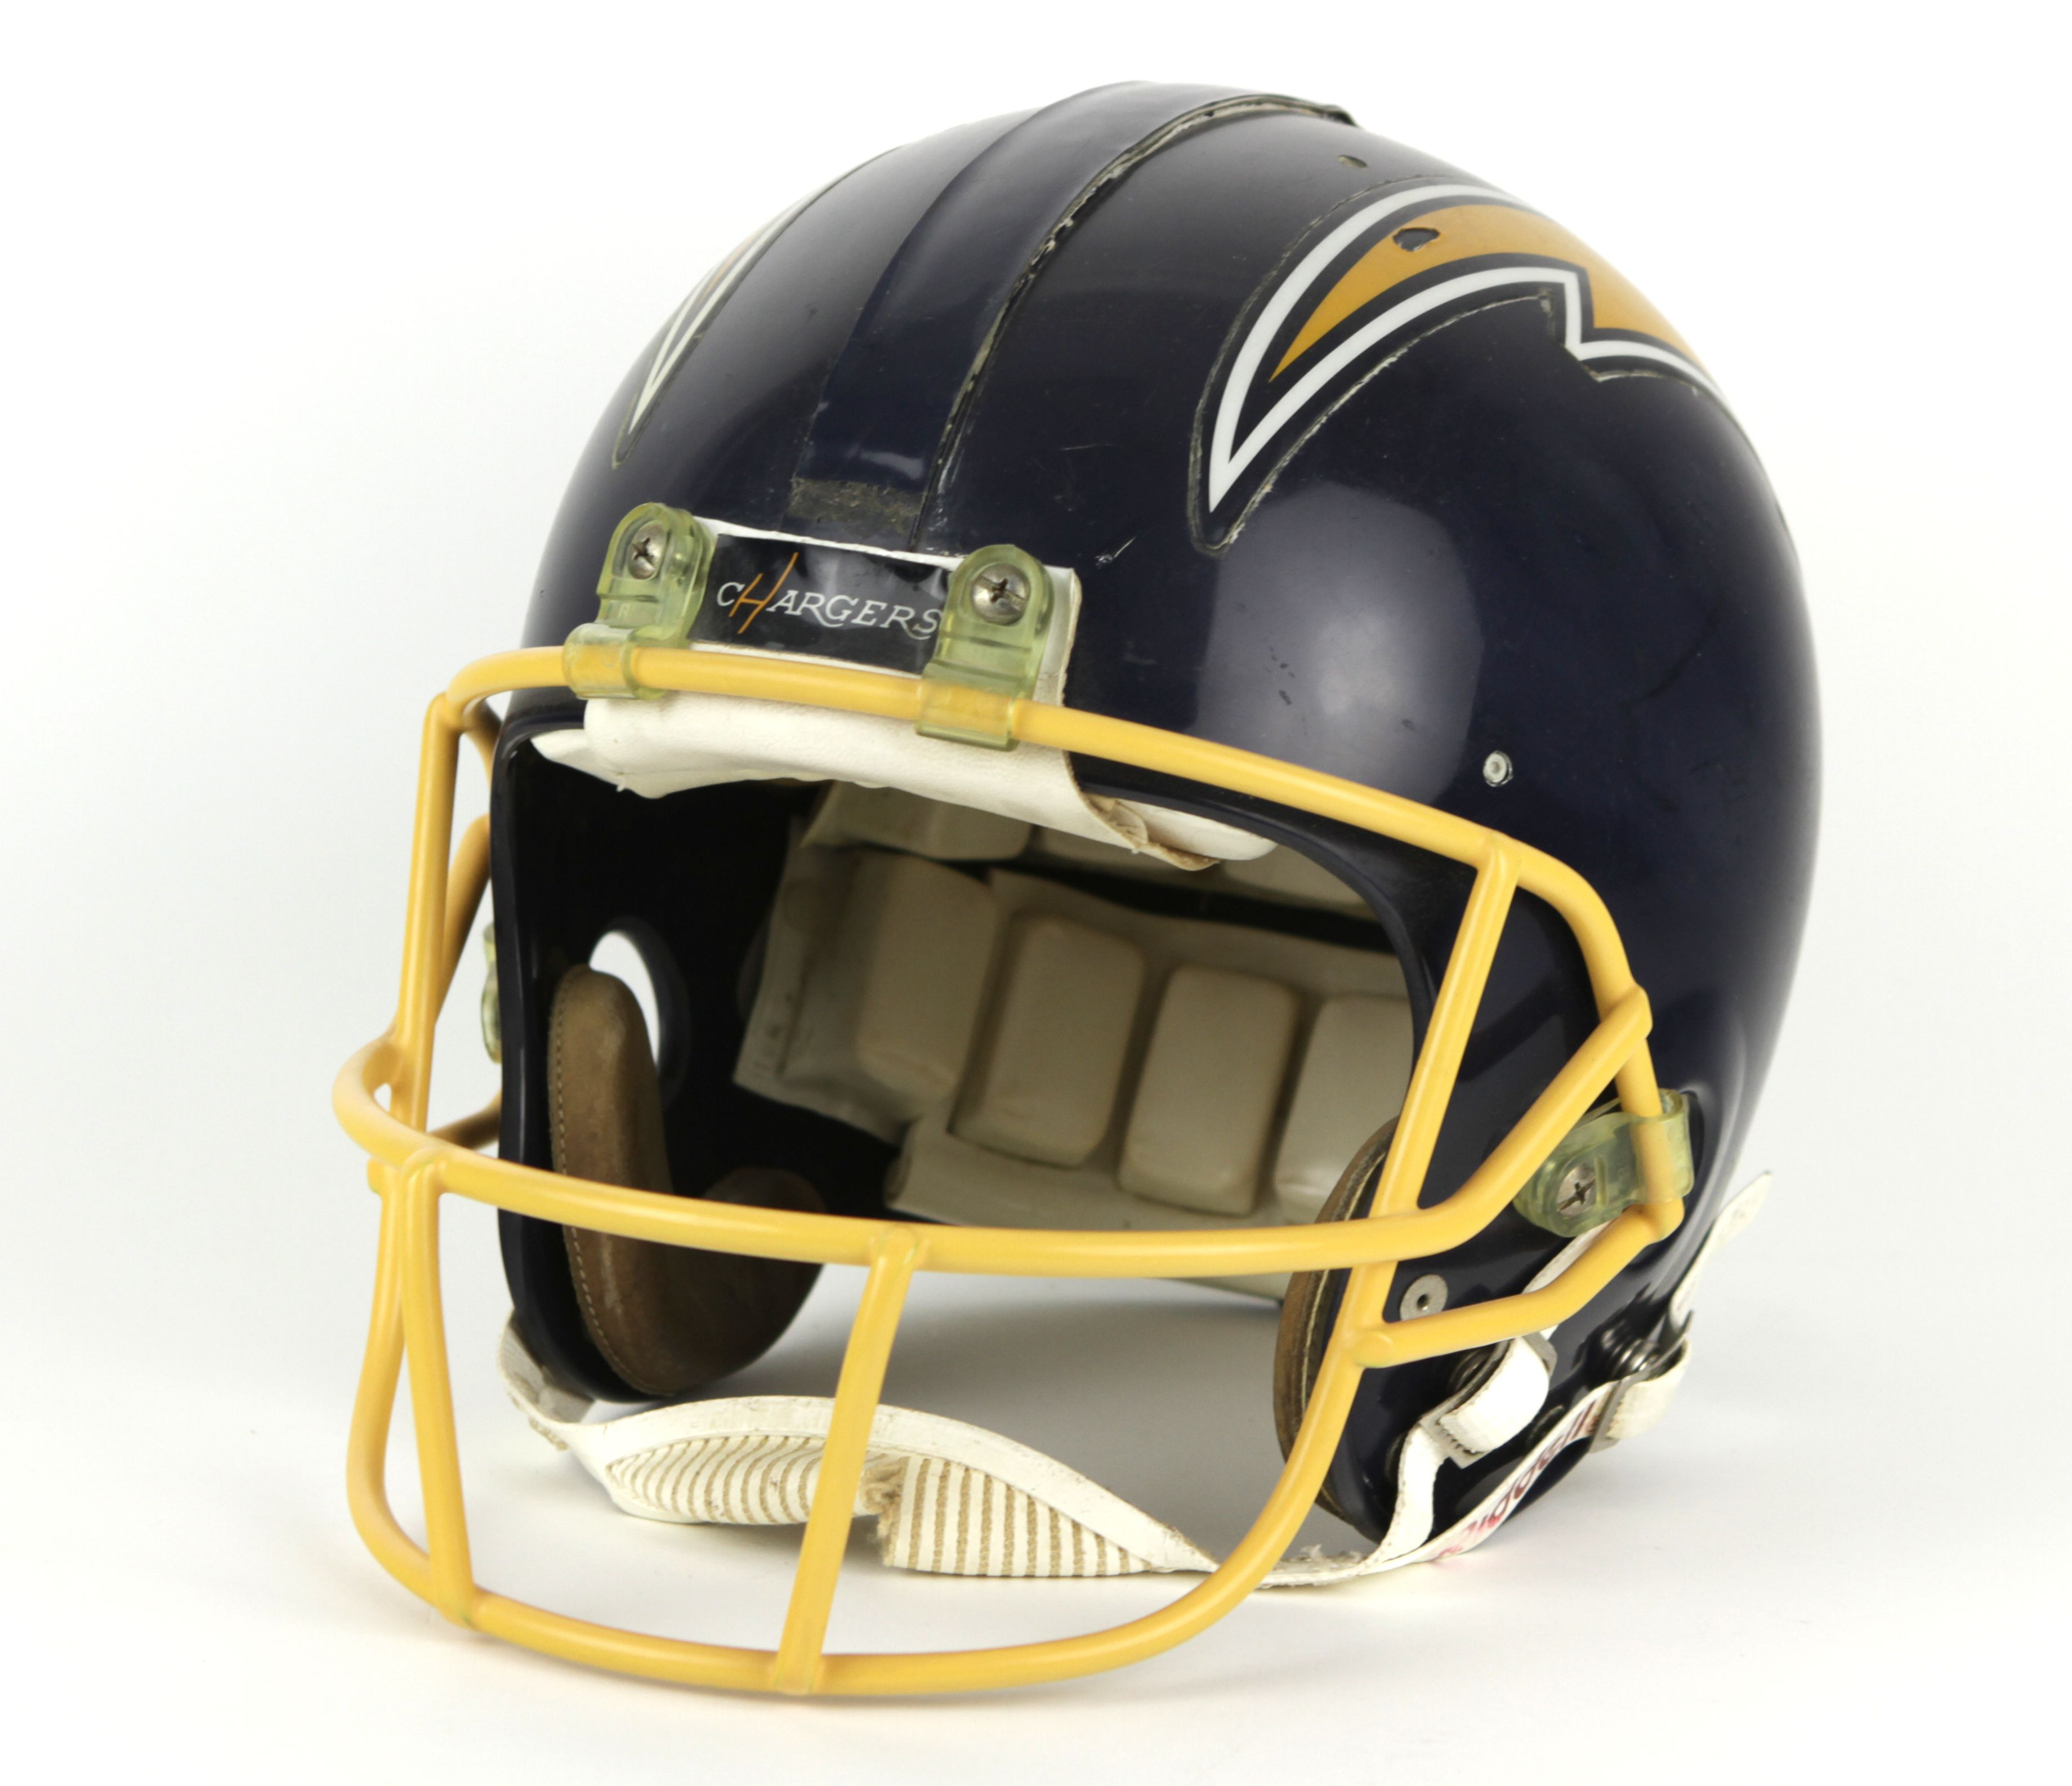 San Diego Chargers Helmets: 1988-90 Gil Byrd San Diego Chargers Game Worn